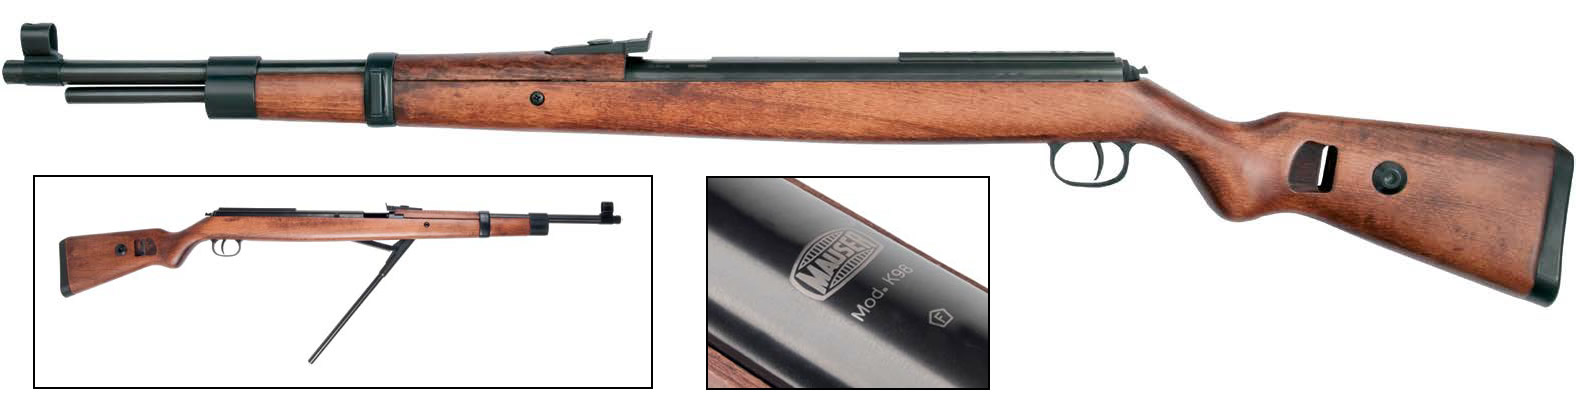 Legendär, Mauser K98 Weitschuss Luftgewehr, made in Germany, Kal. 4,5mm (P18)